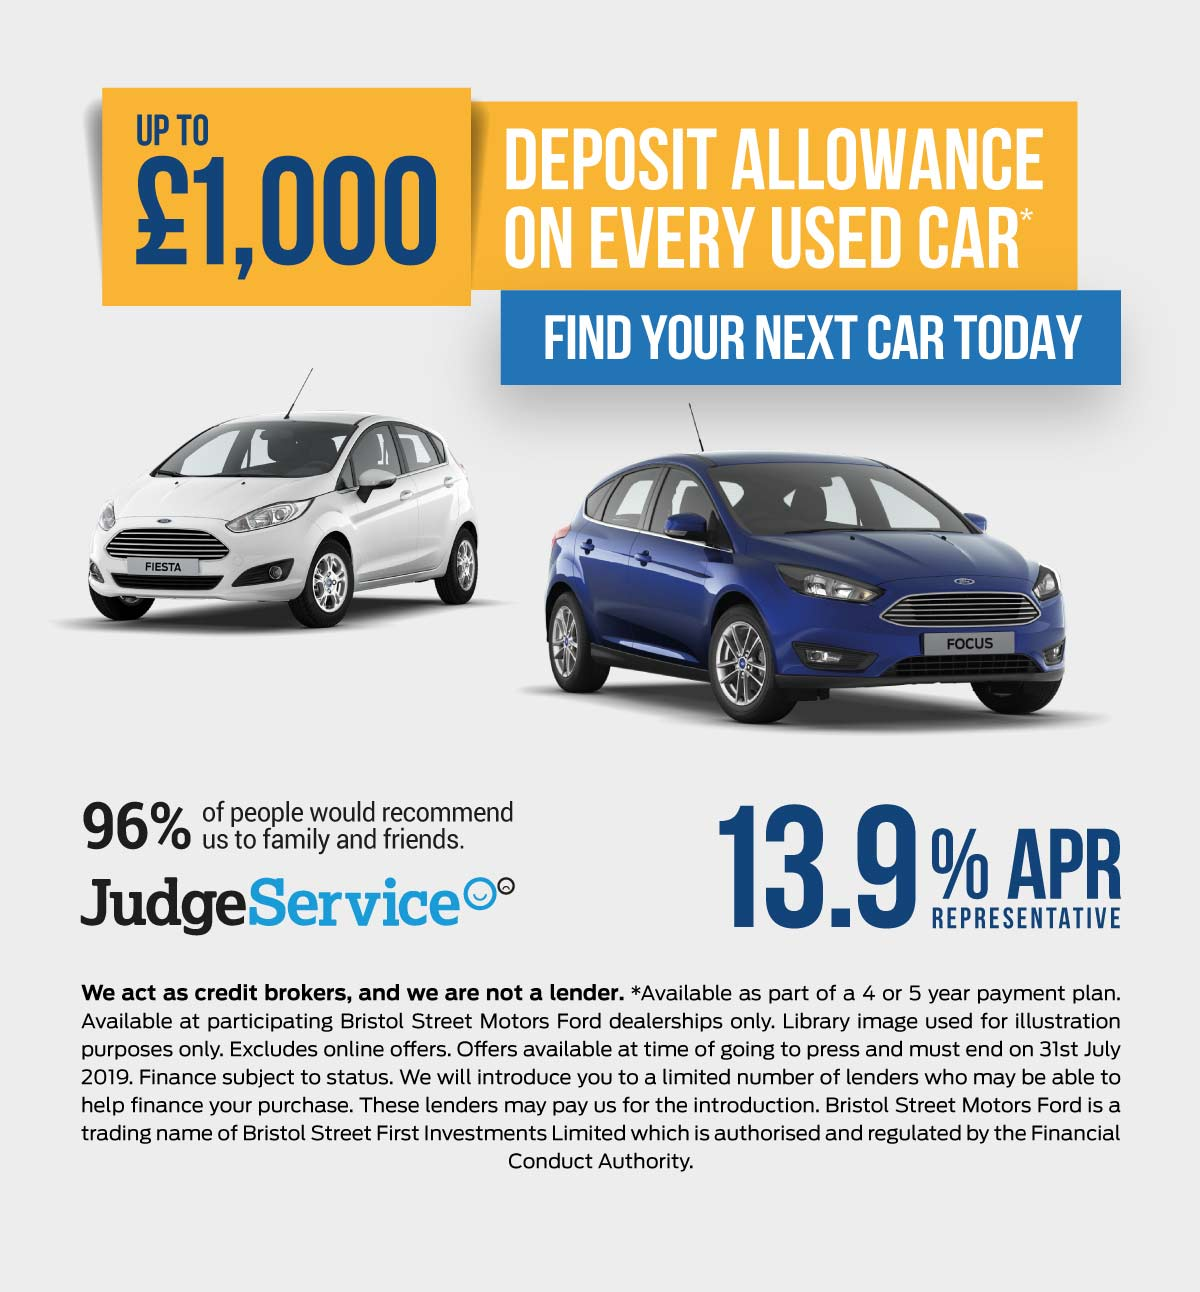 Ford Deposit Allowance Shirley 220819 Banner 1